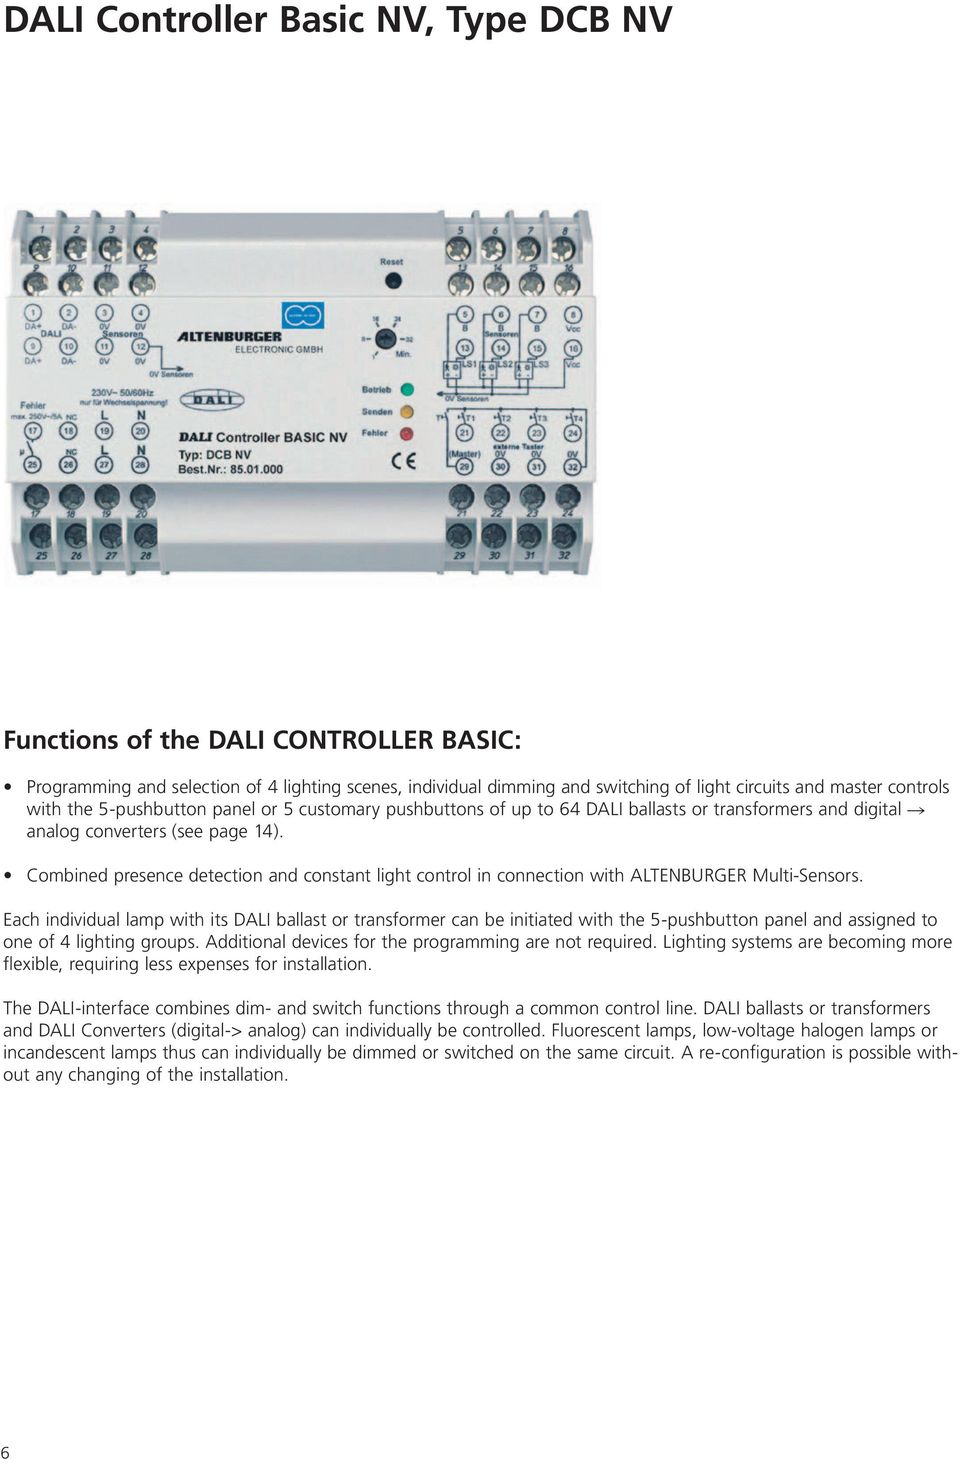 Altenburger Digital Lighting Controls Pdf Additionally Light Ballast Wiring Diagram On 0 10v Dimming Led Combined Presence Detection And Constant Control In Connection With Ateburger Multi Sensors